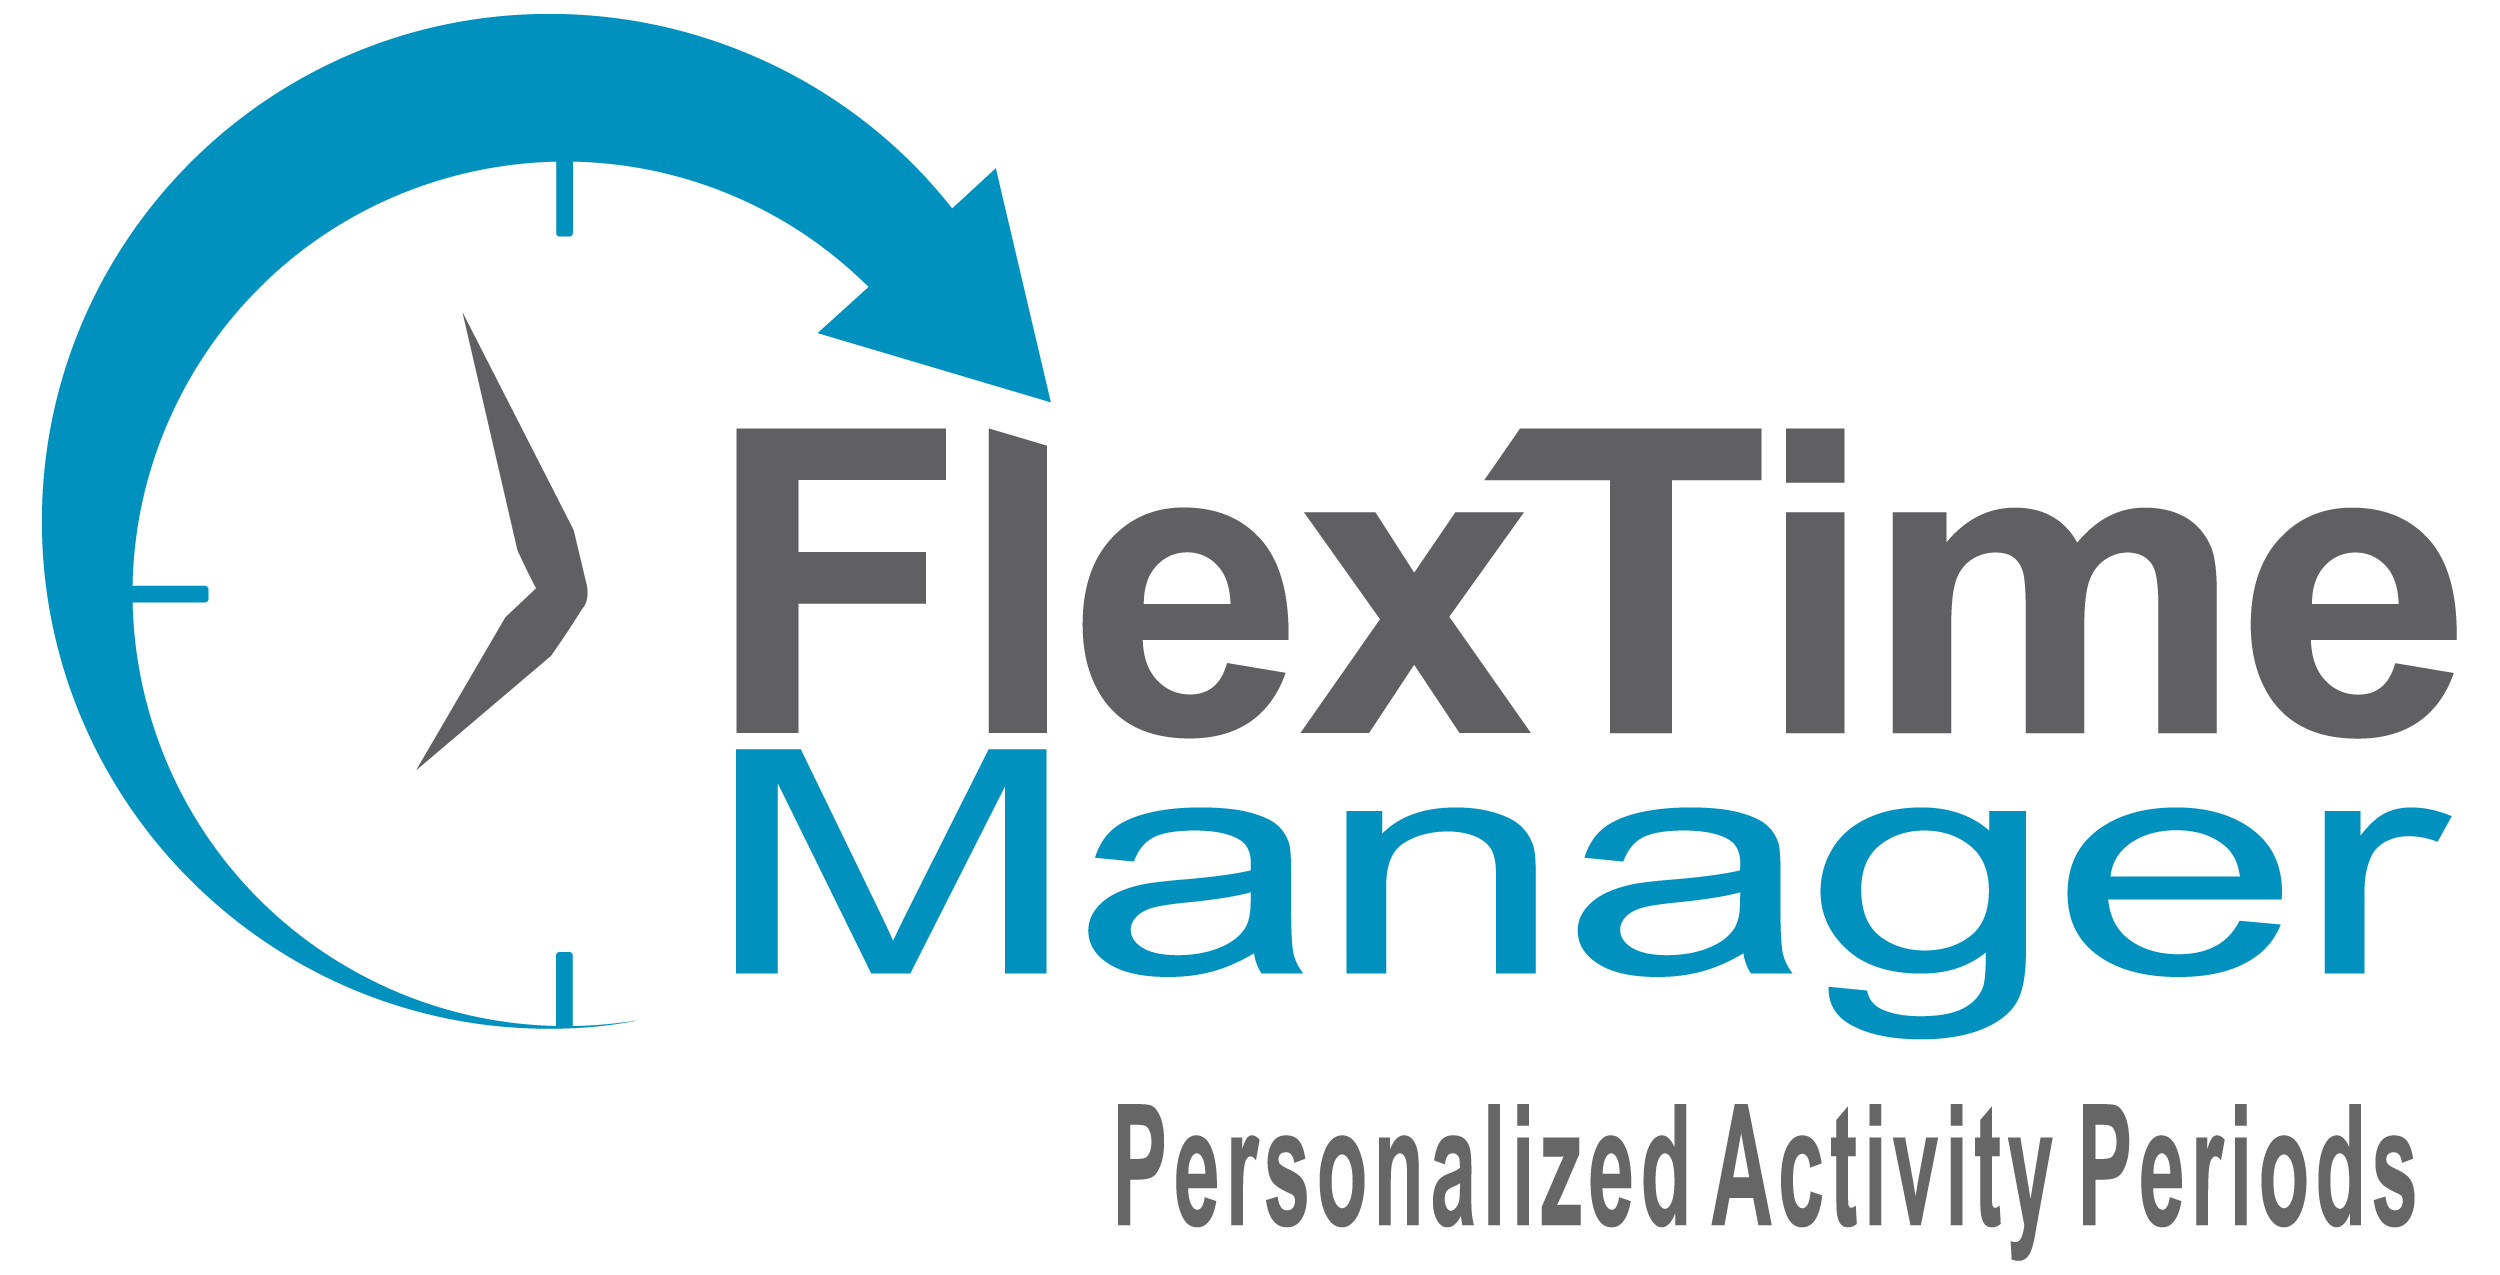 FlexTime Manager from Eduspire Solutions: flexible scheduling of personalized activity periods